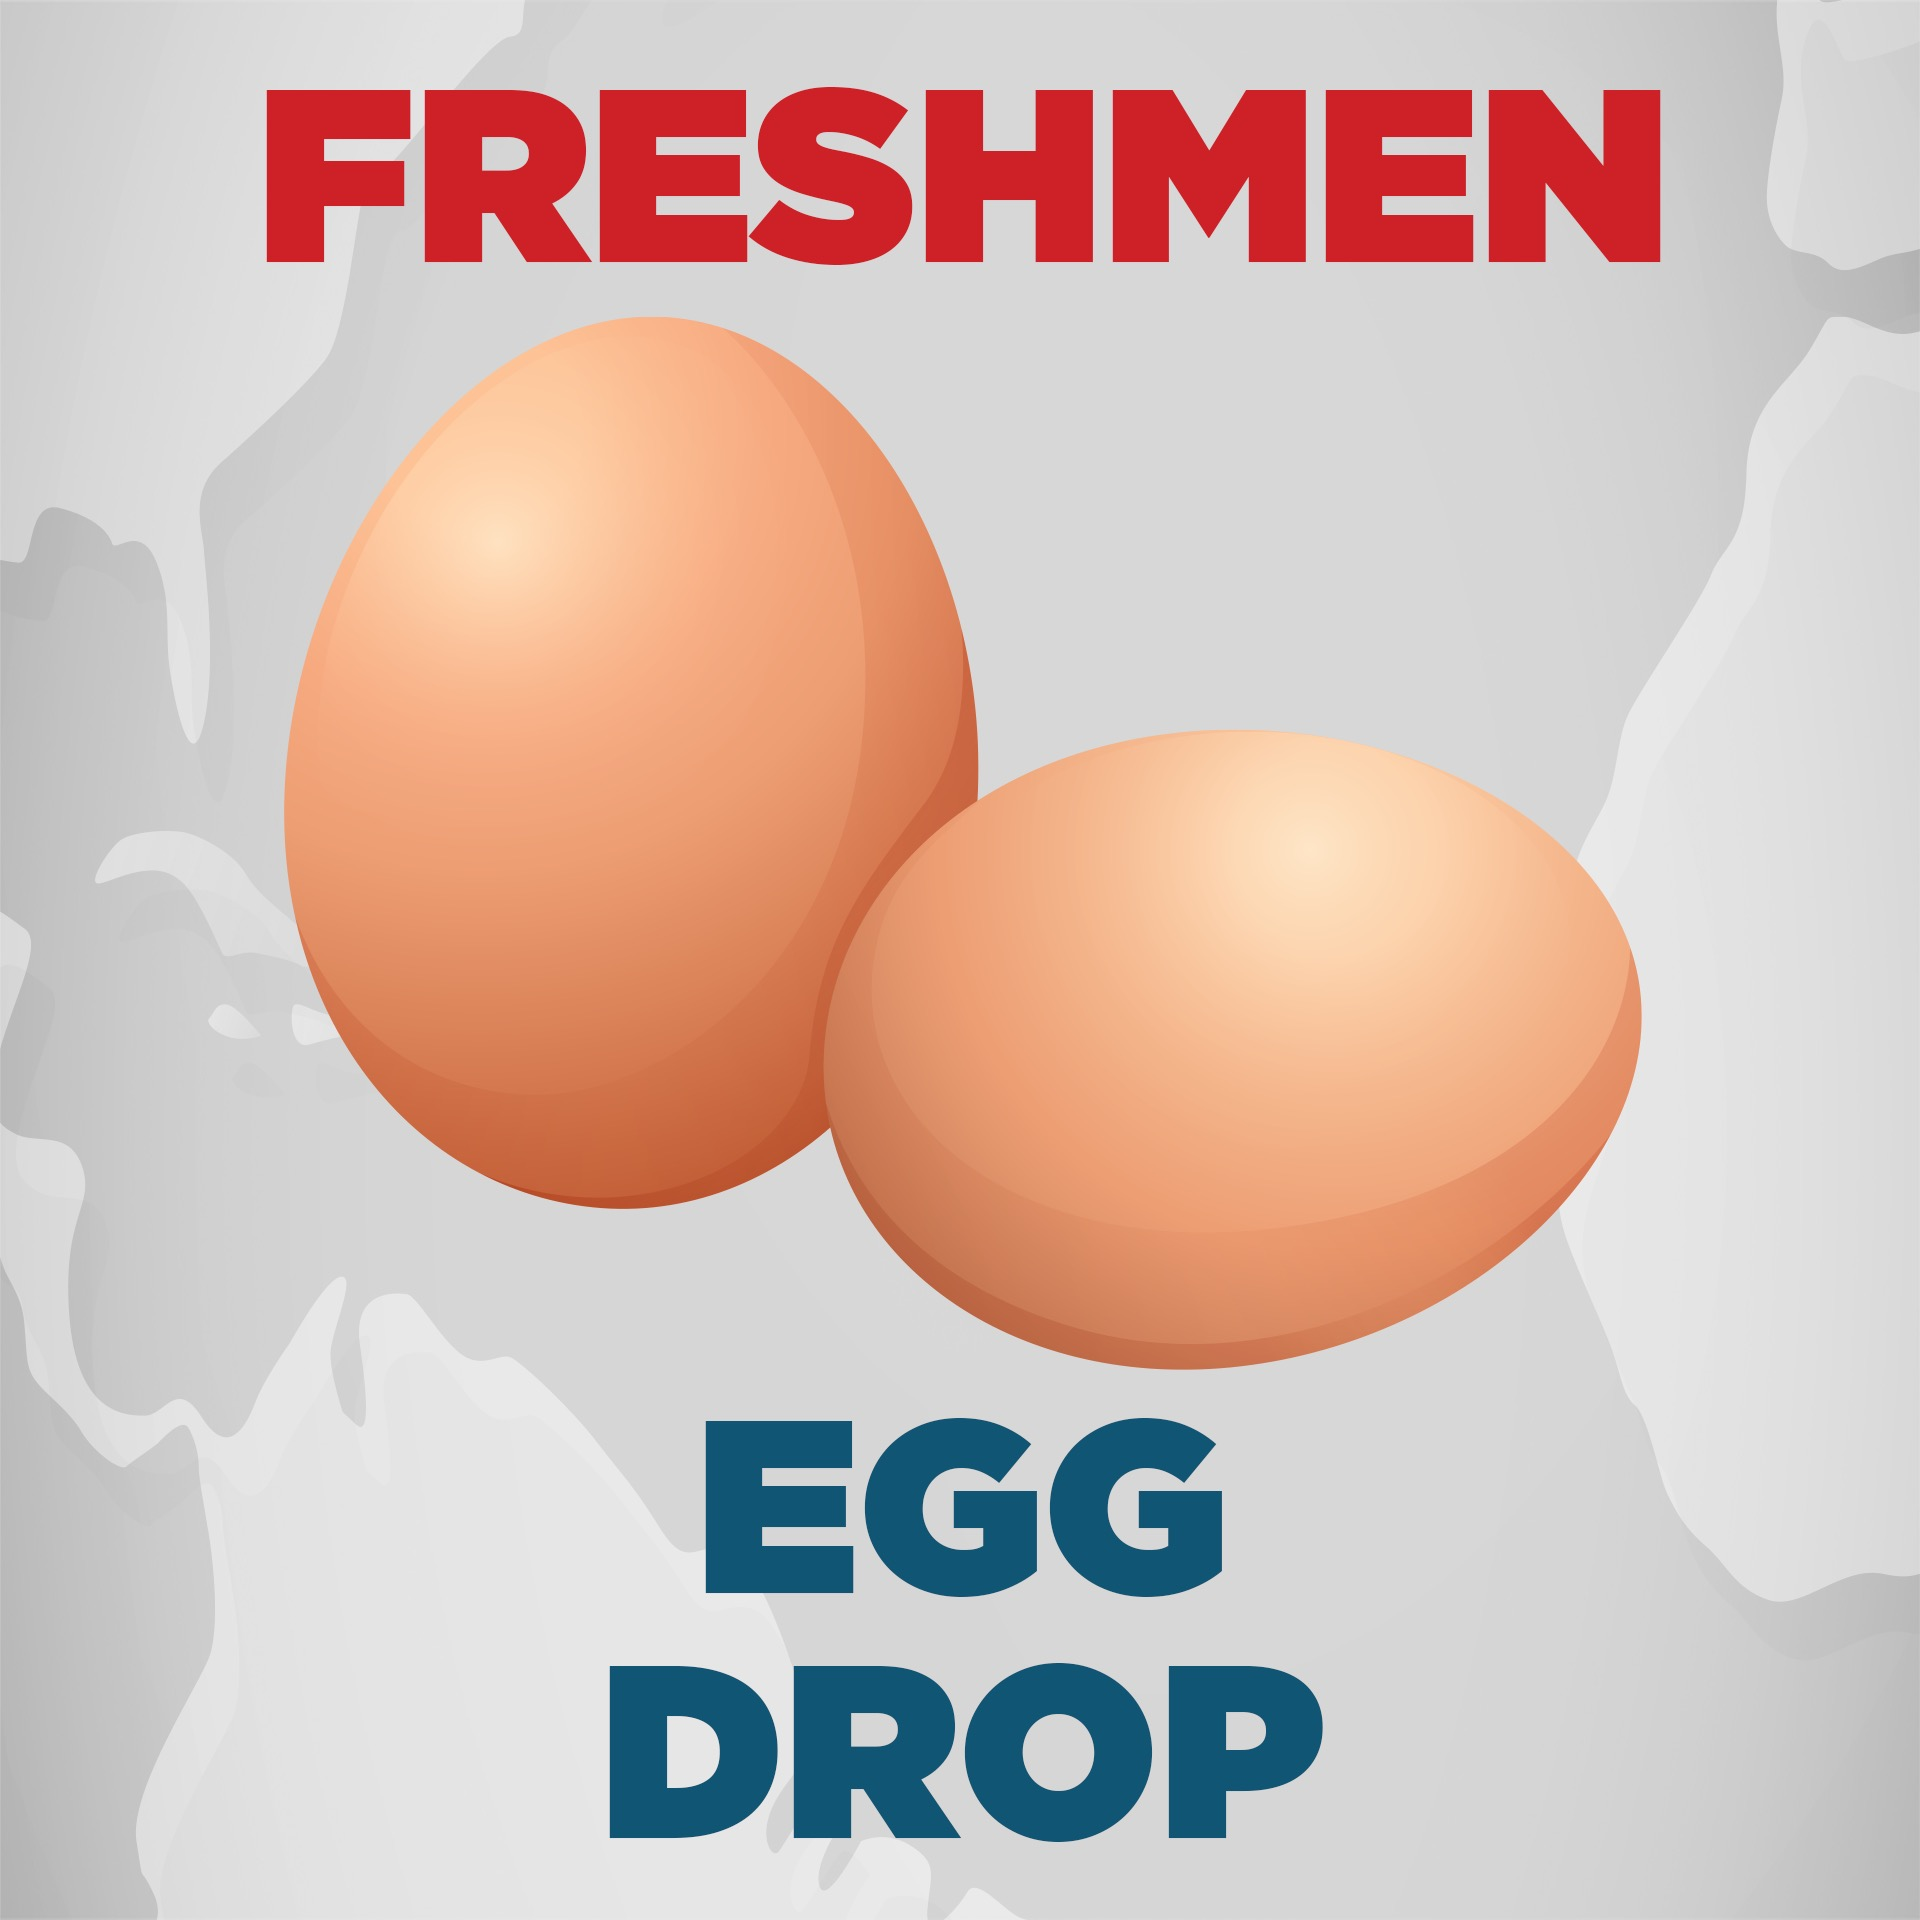 9th Egg Drop